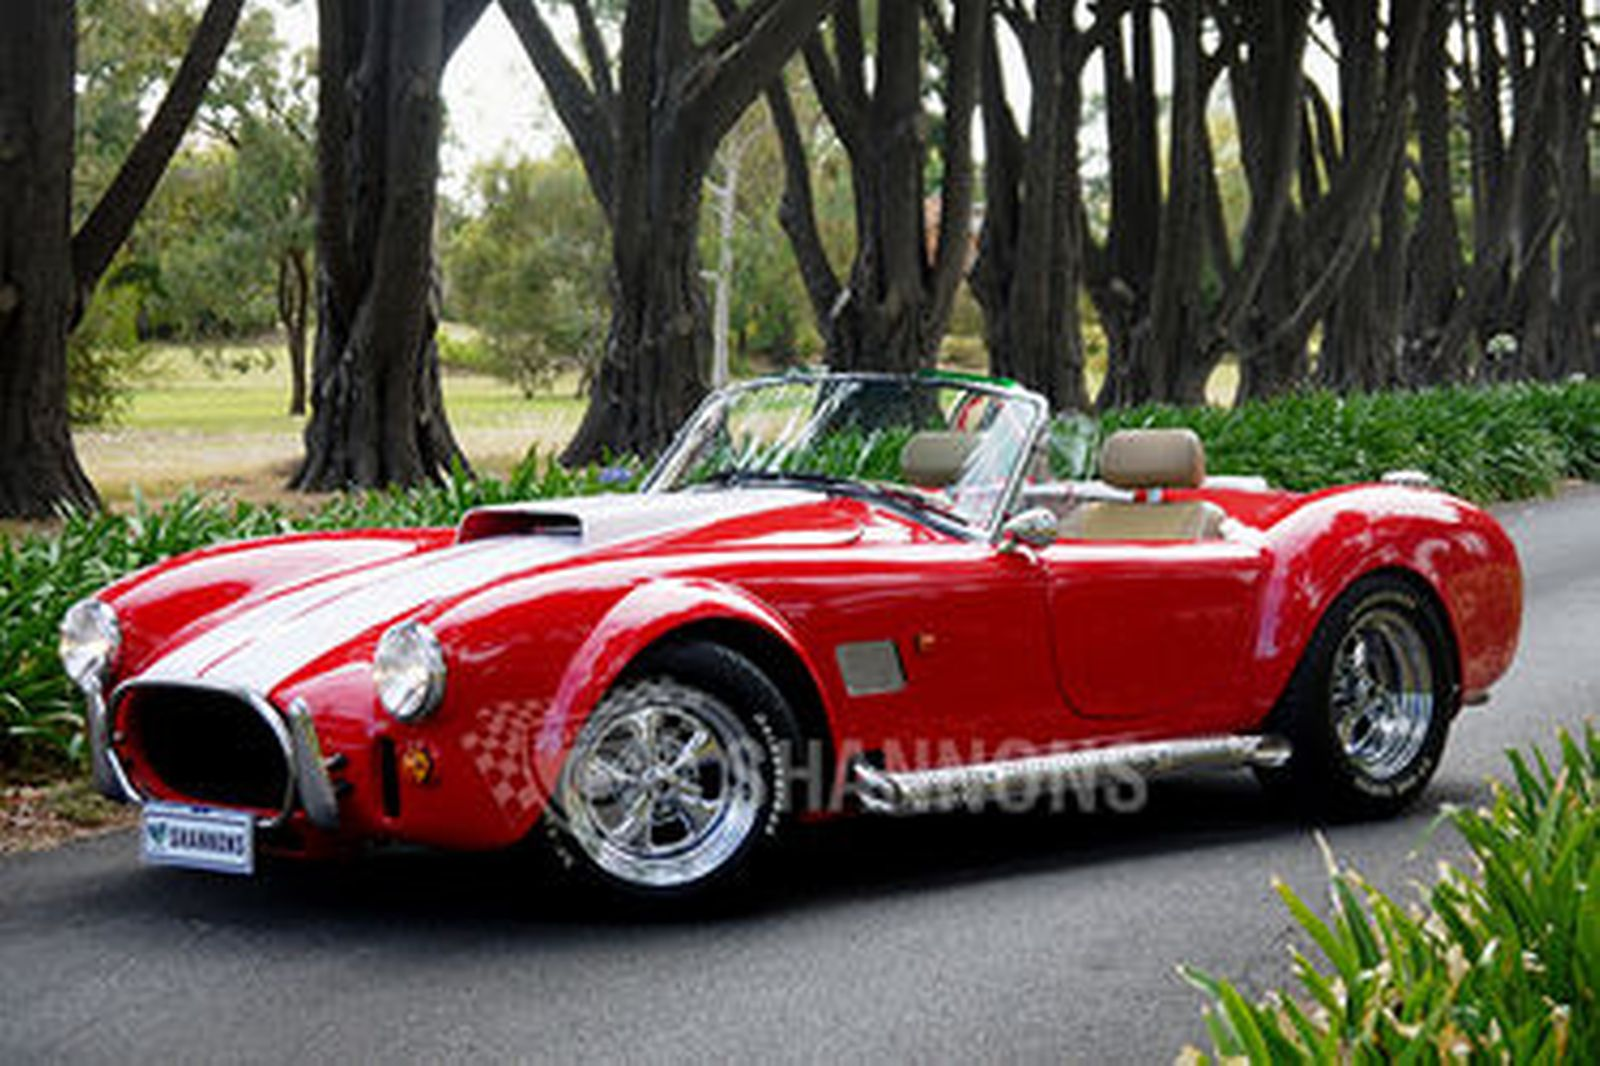 Sold DRB Cobra Roadster Auctions Lot Shannons - Drb sports cars queensland